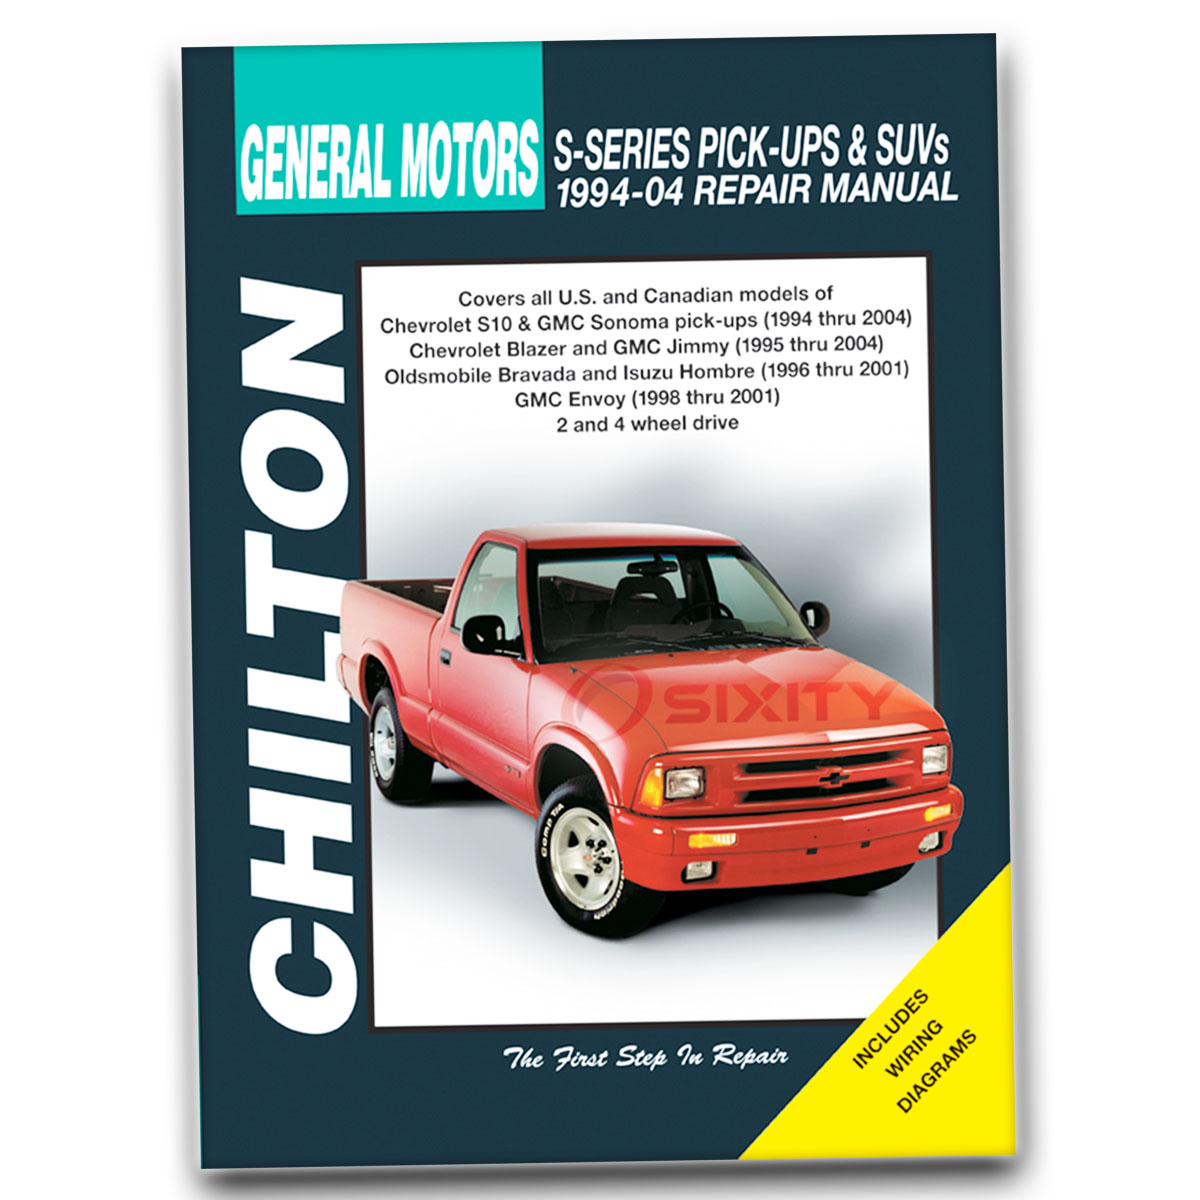 chevy s10 blazer chilton repair manual tahoe lt base shop service rh ebay com 1994 chevy s10 blazer repair manual pdf 1994 chevy blazer service manual